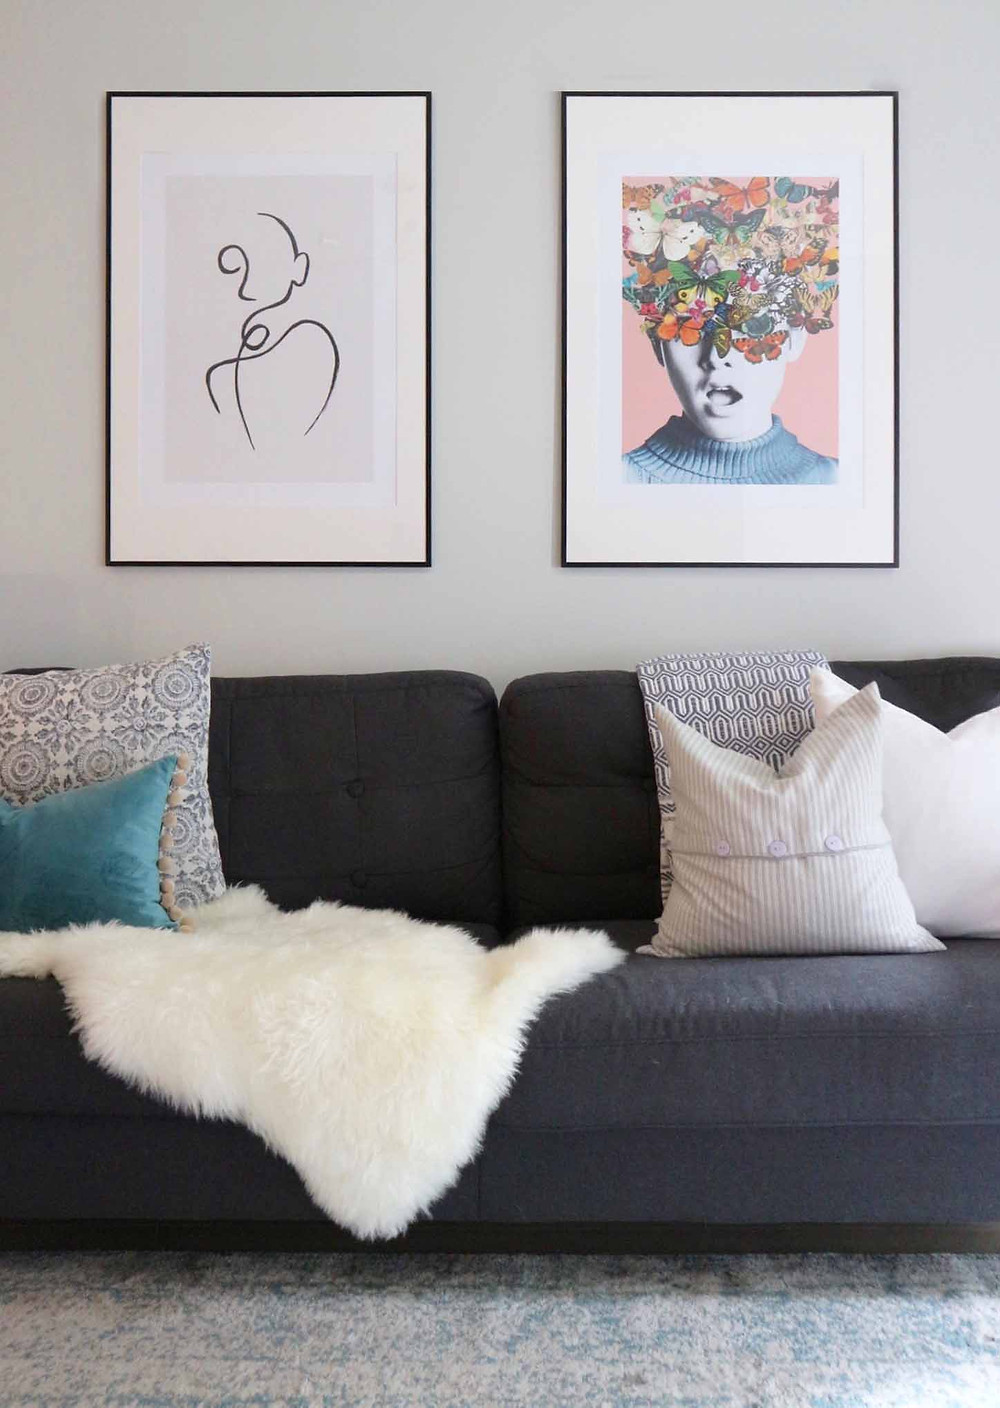 My Apartment - Living Room Wall Art with Desenio